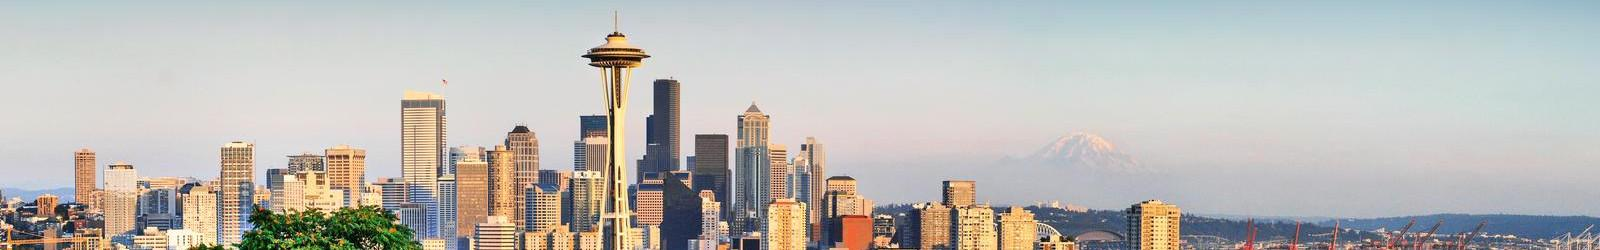 Addictions or Substance Abuse therapists in Seattle, Washington